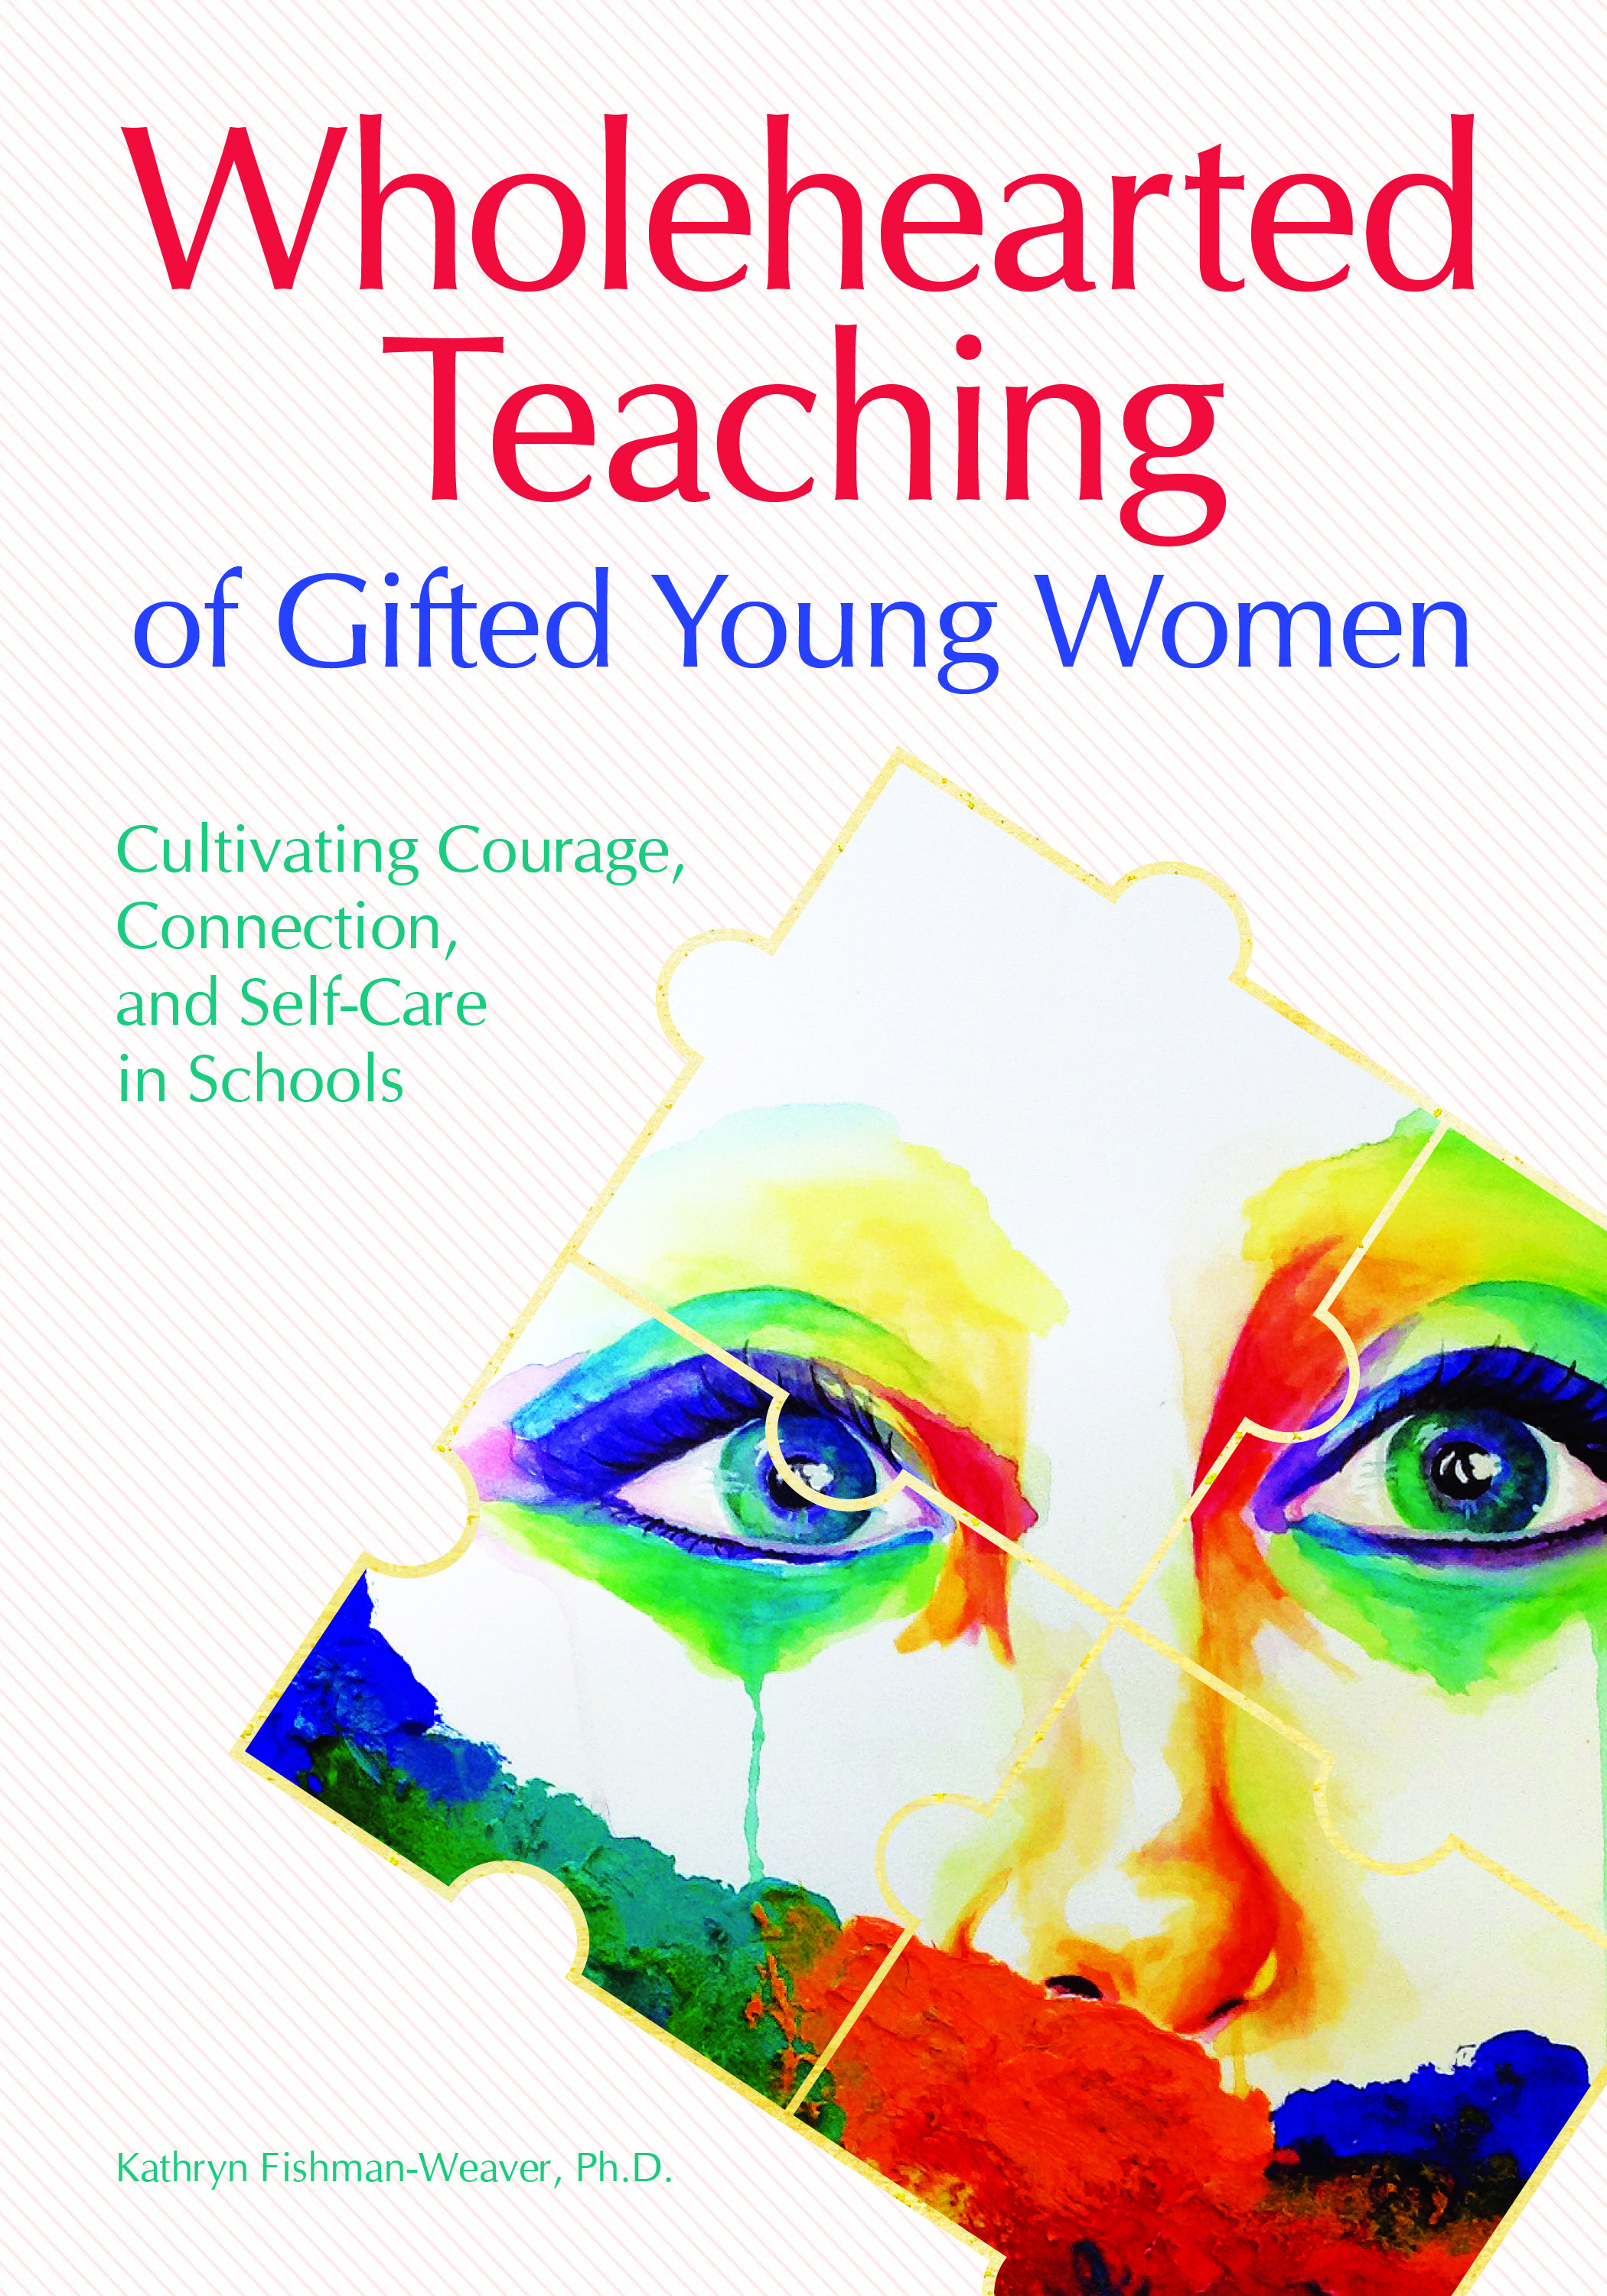 Wholehearted Teaching of Gifted Young Women: Cultivating Courage, Connection, and Self-Care in Schools